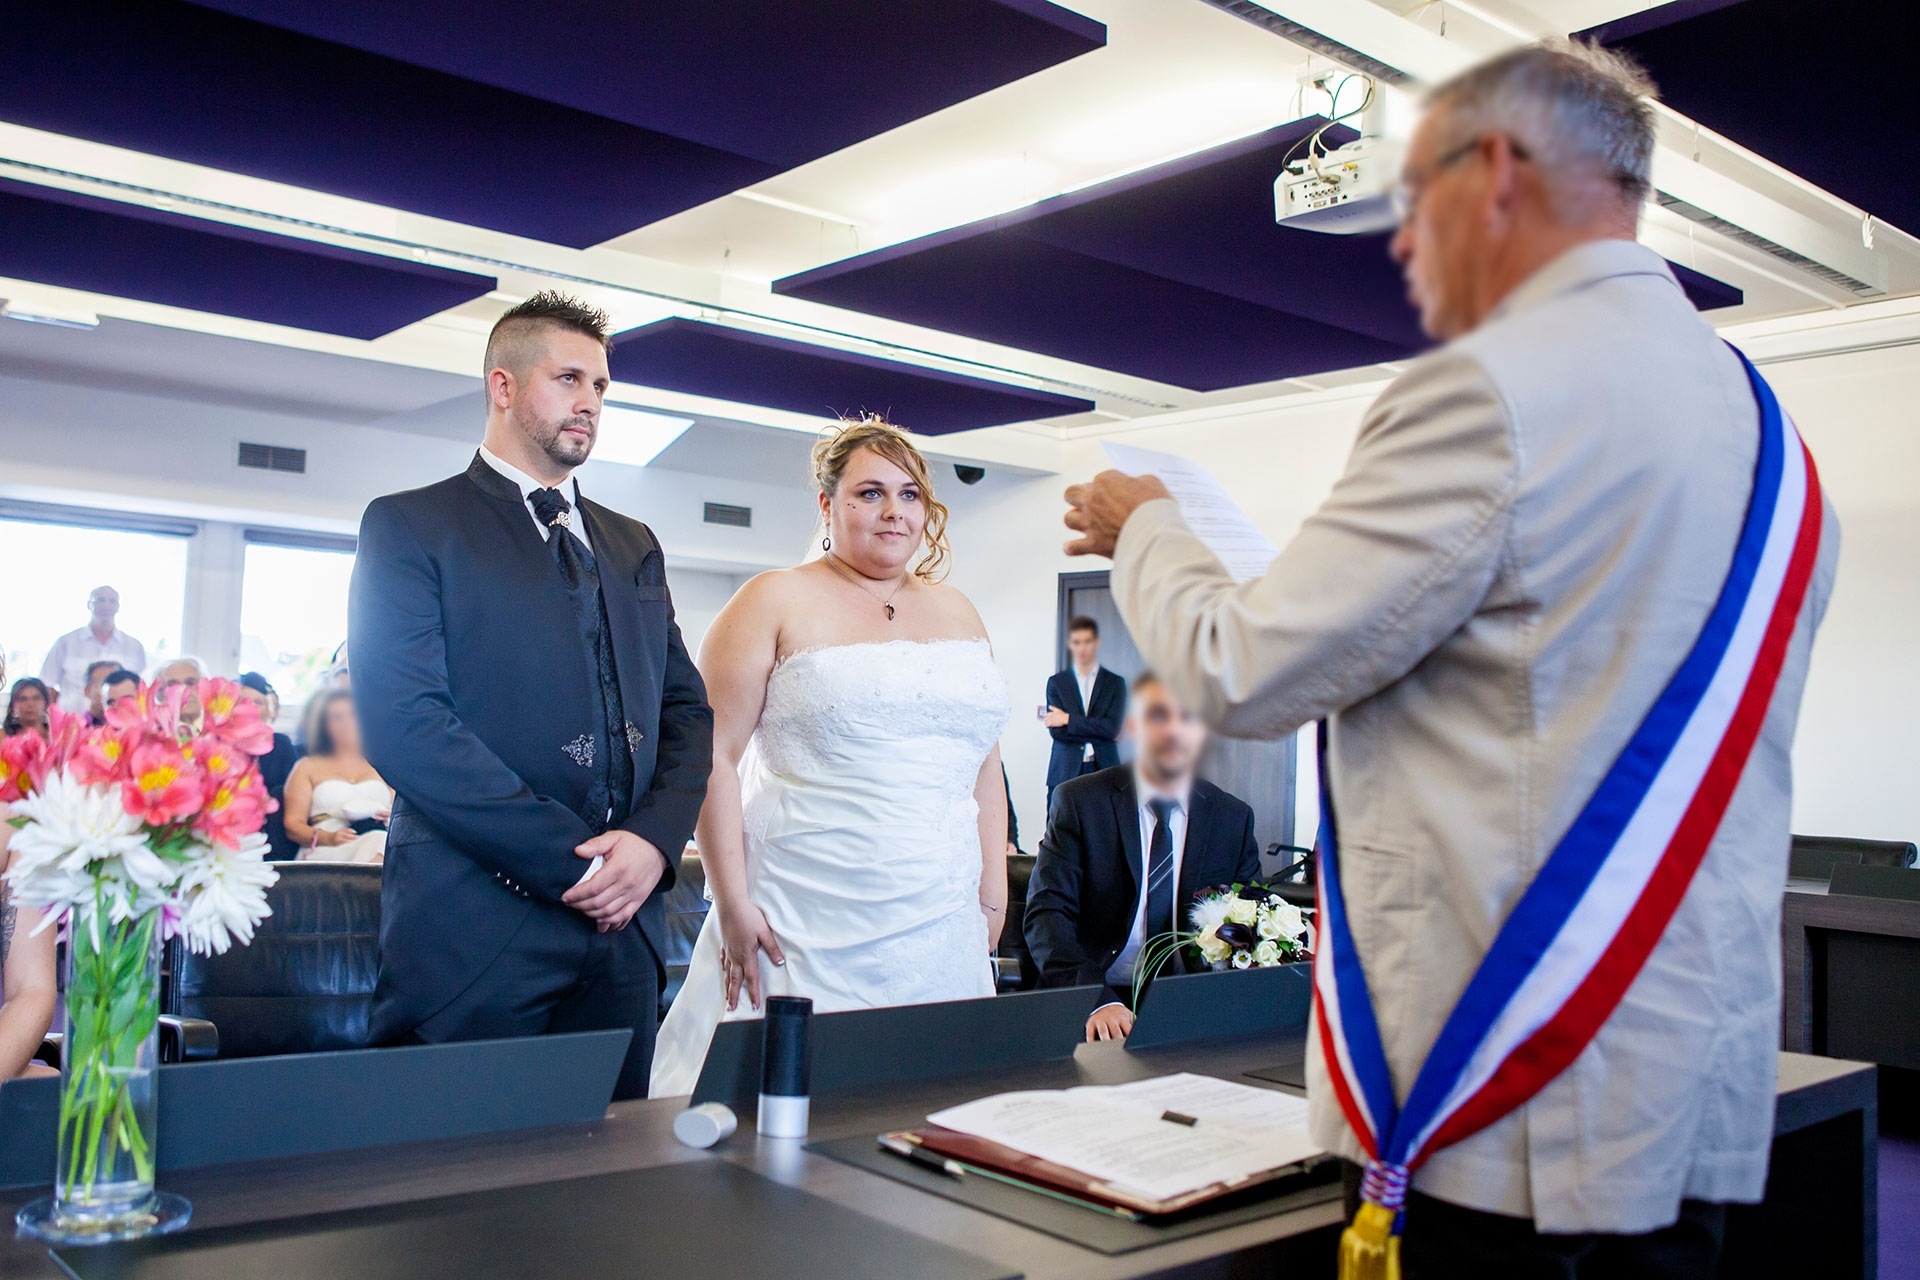 particuliers-evenements-mariages-oui-elodie&wilson-32